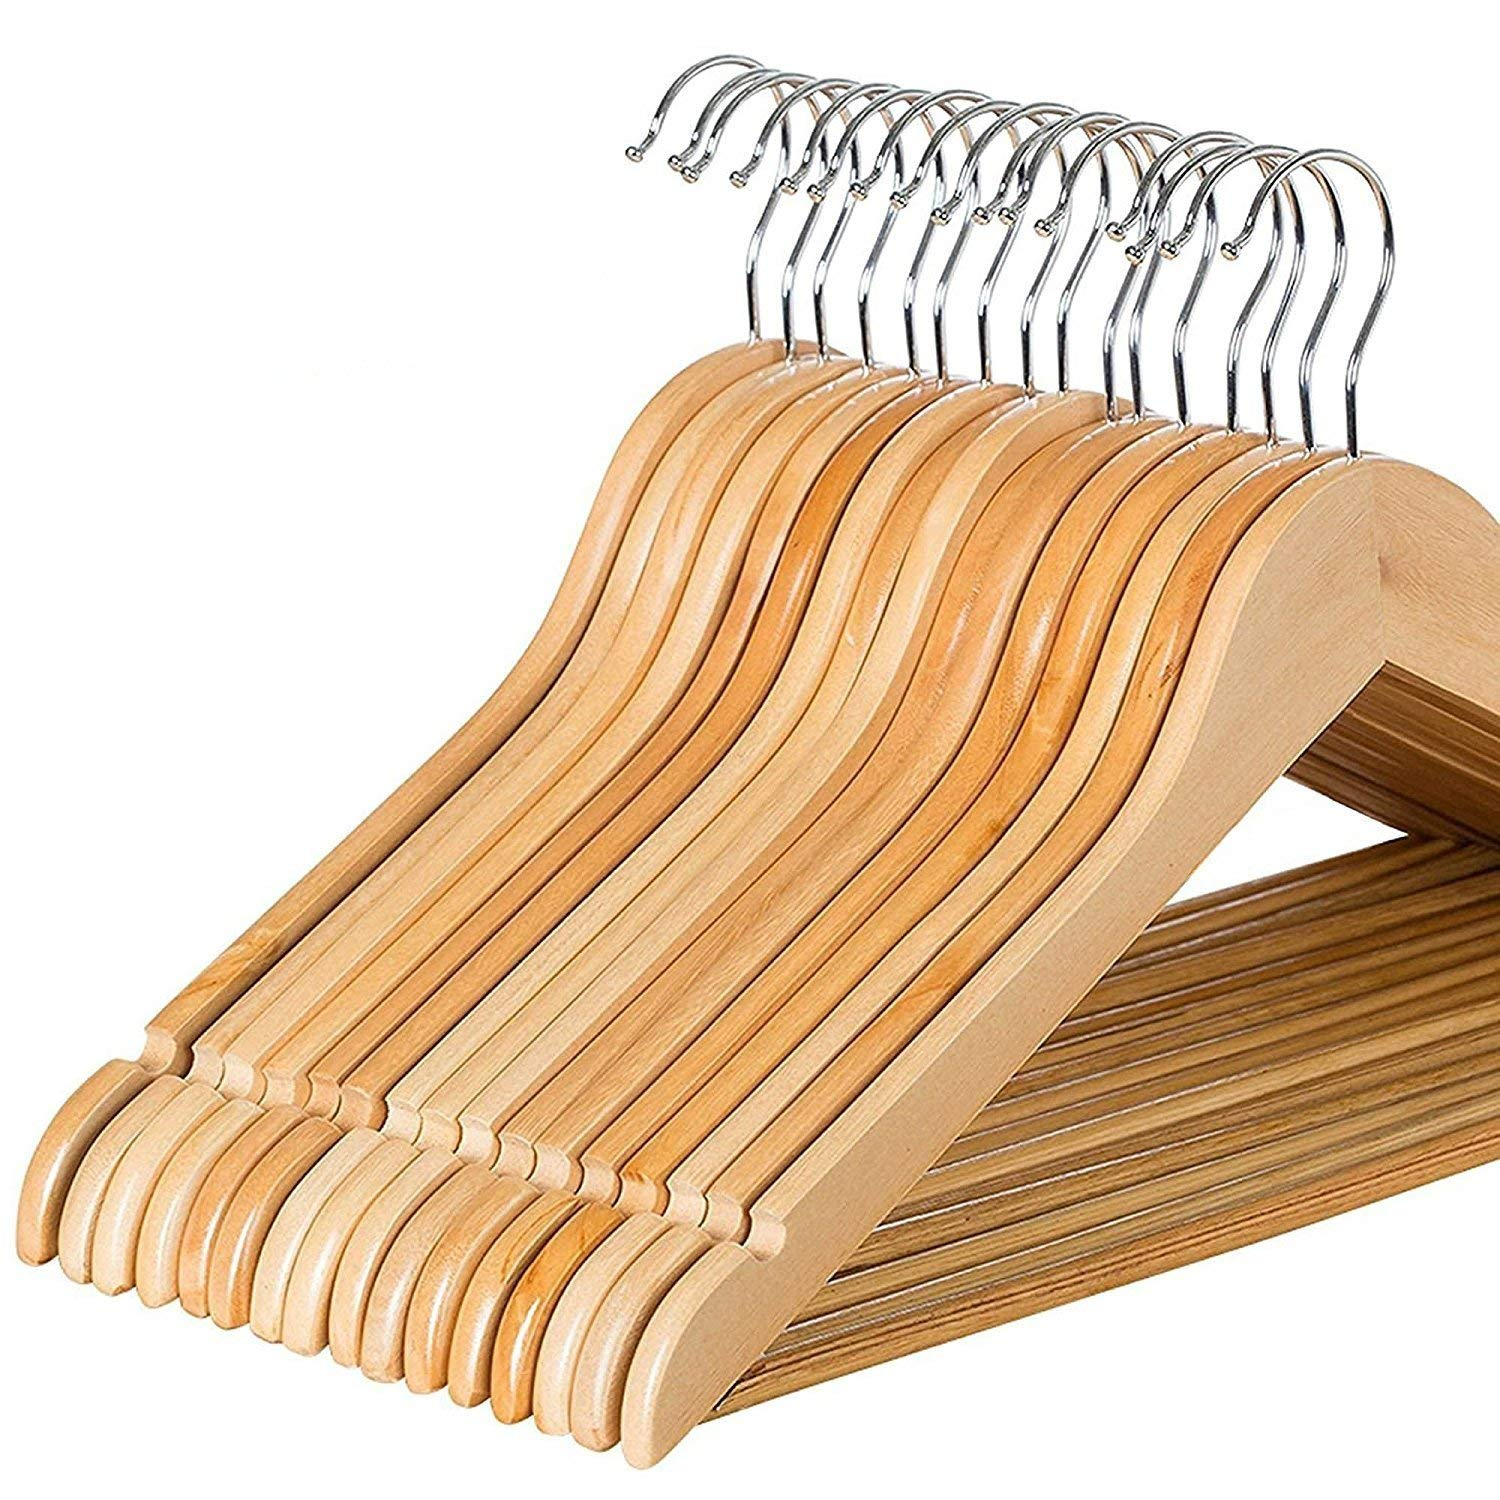 Zober Solid Wood Suit Hangers 17 1/2 x 1/2 x 9 Inches Non Slip Bar and Precisely Cut Notches with 360 Degree Swivel Hook Set of 20 Natural Wood